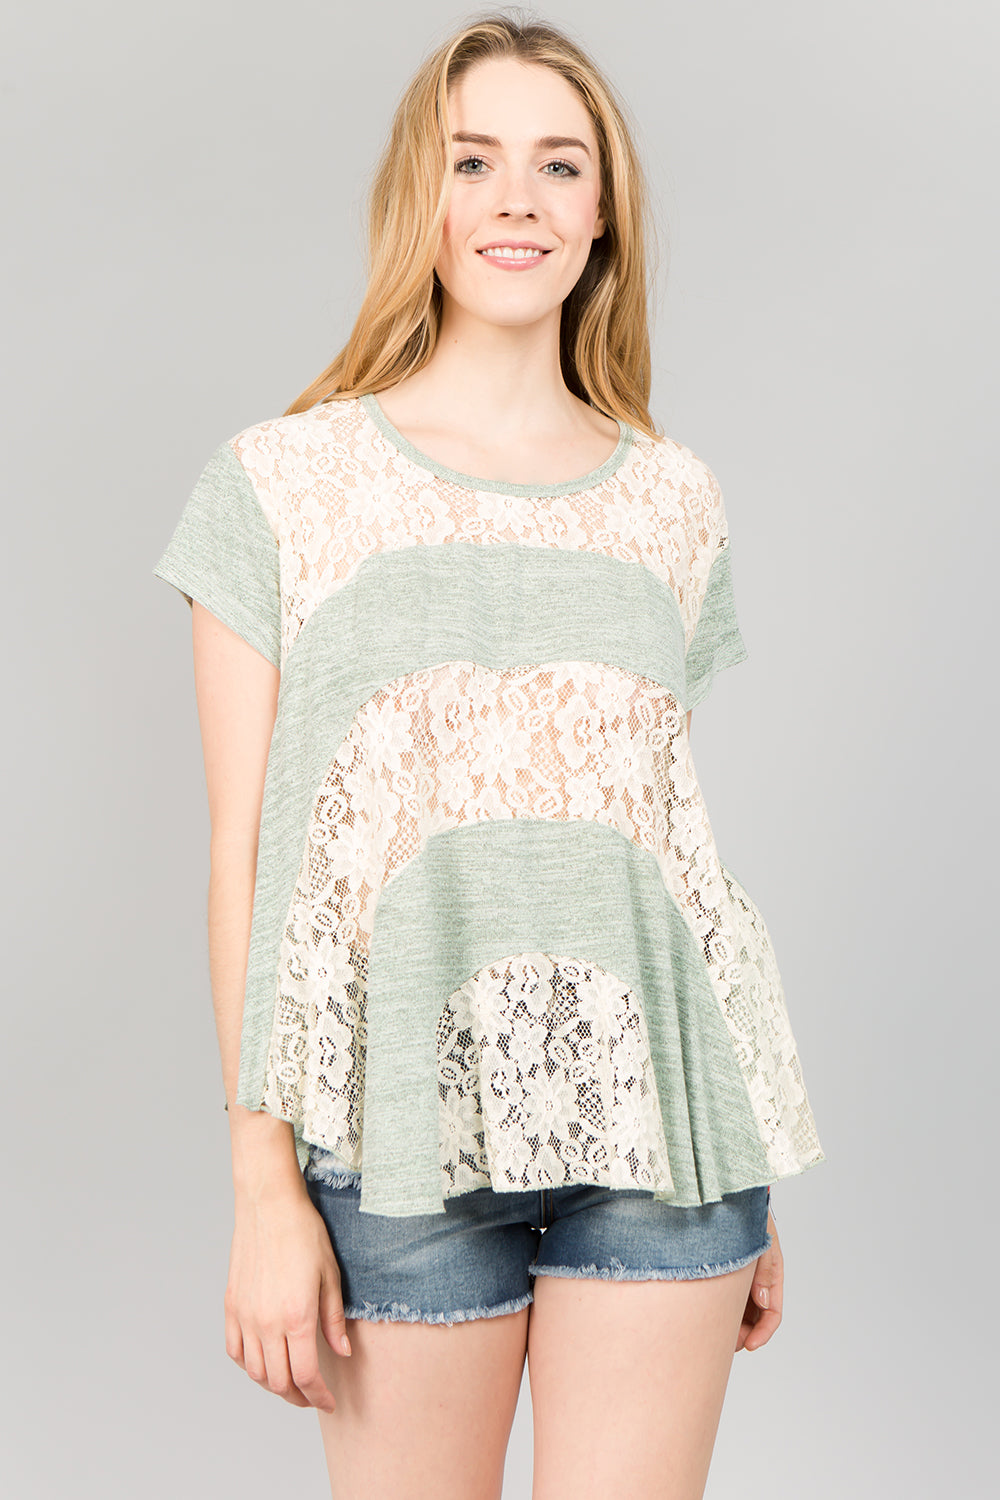 T2114 Lace Top - BLUSH